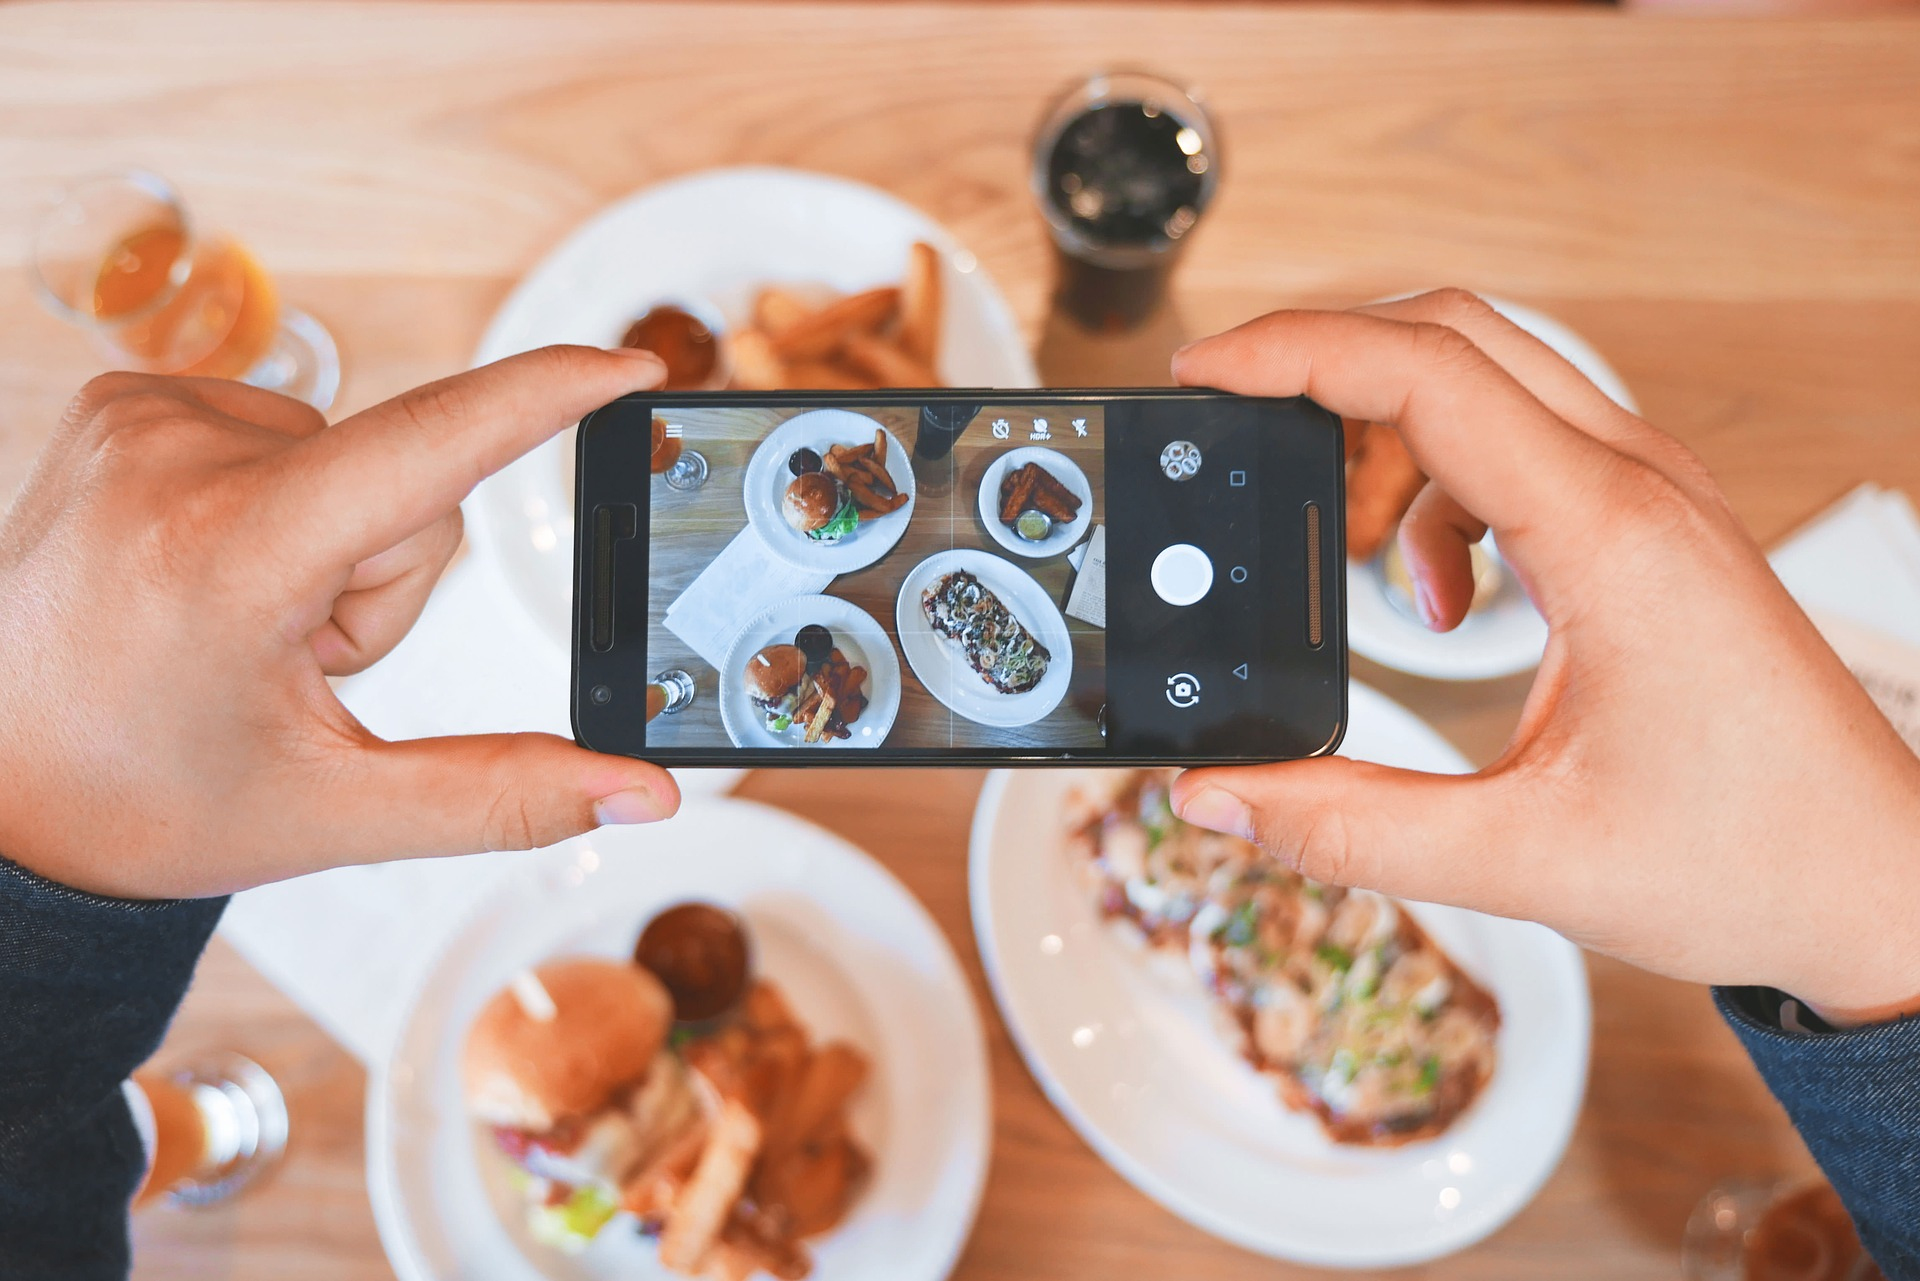 Top 5 dicas de marketing digital para bares e restaurantes